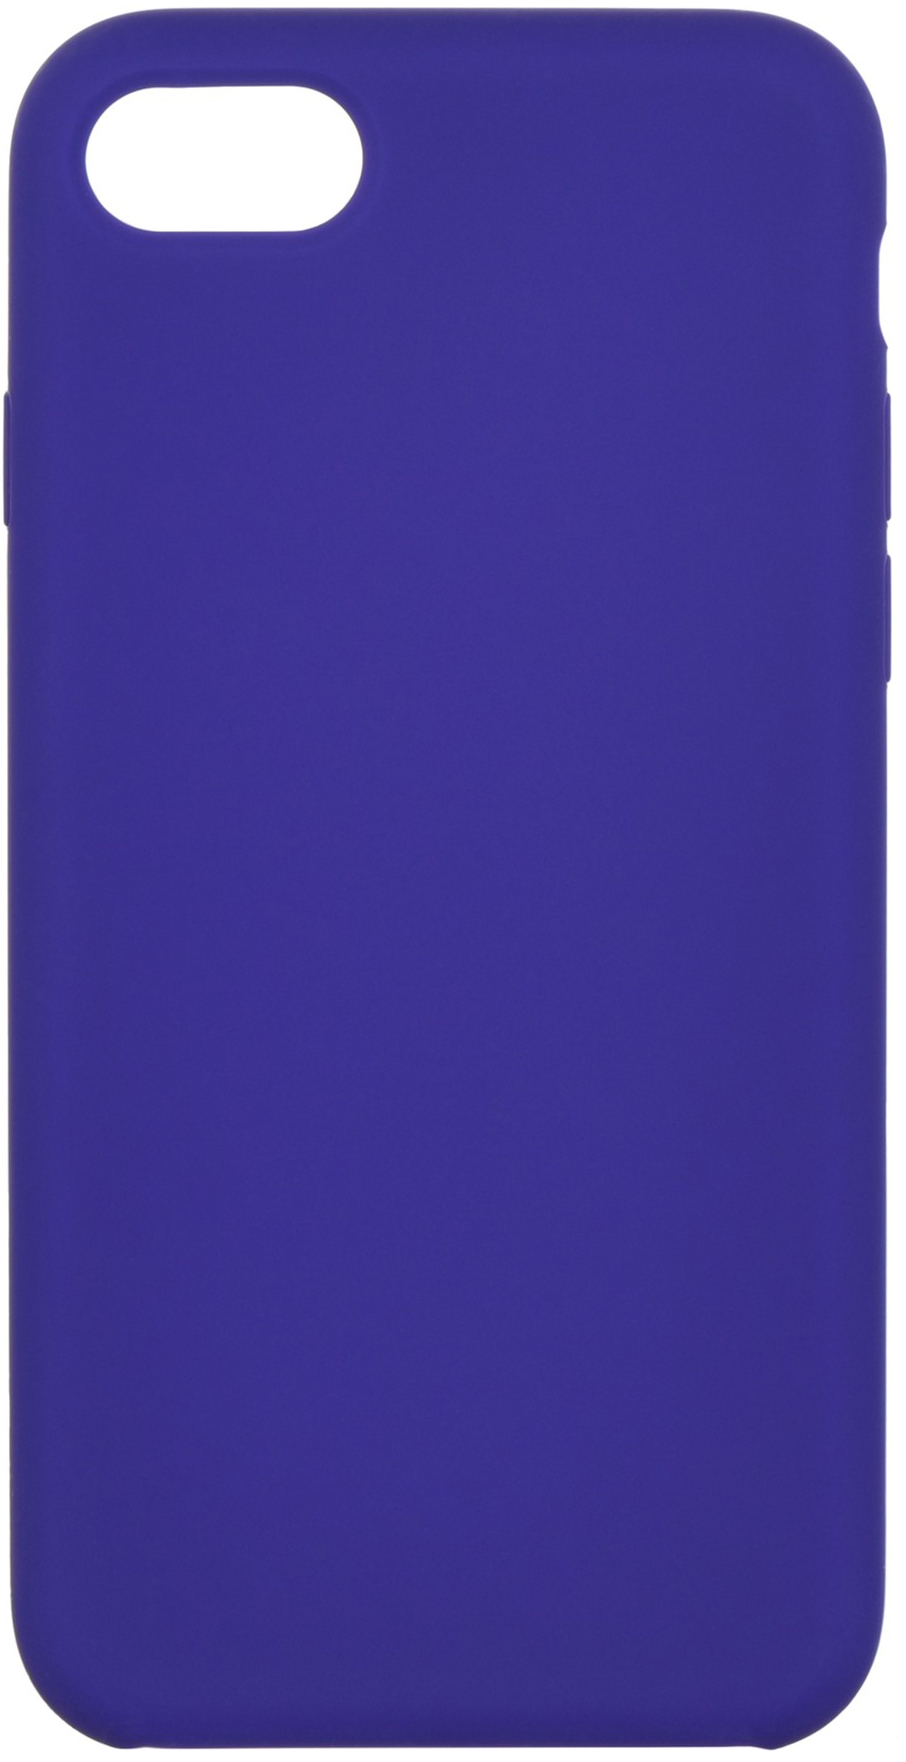 Панель 2Е Liquid Silicone для Apple iPhone 7/8 Deep Purple (2E-IPH-7/8-NKSLS-DP)